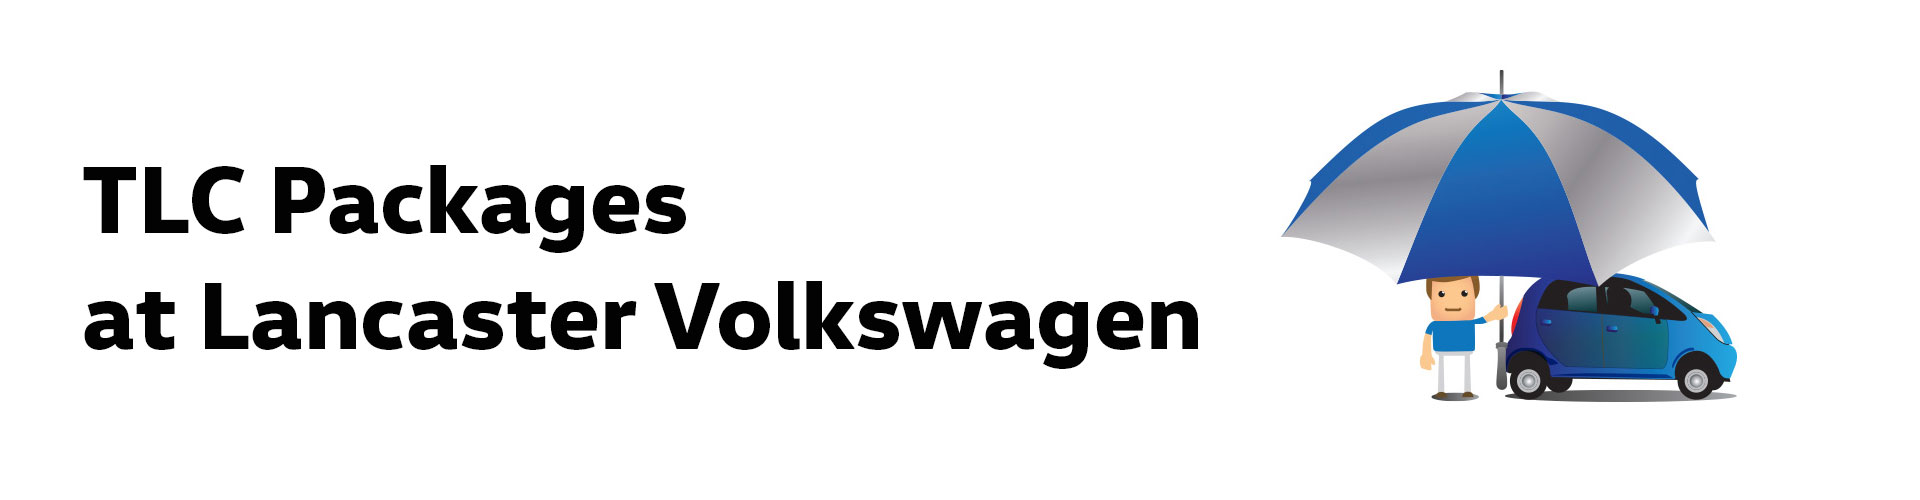 TLC Packages at Lancaster Volkswagen